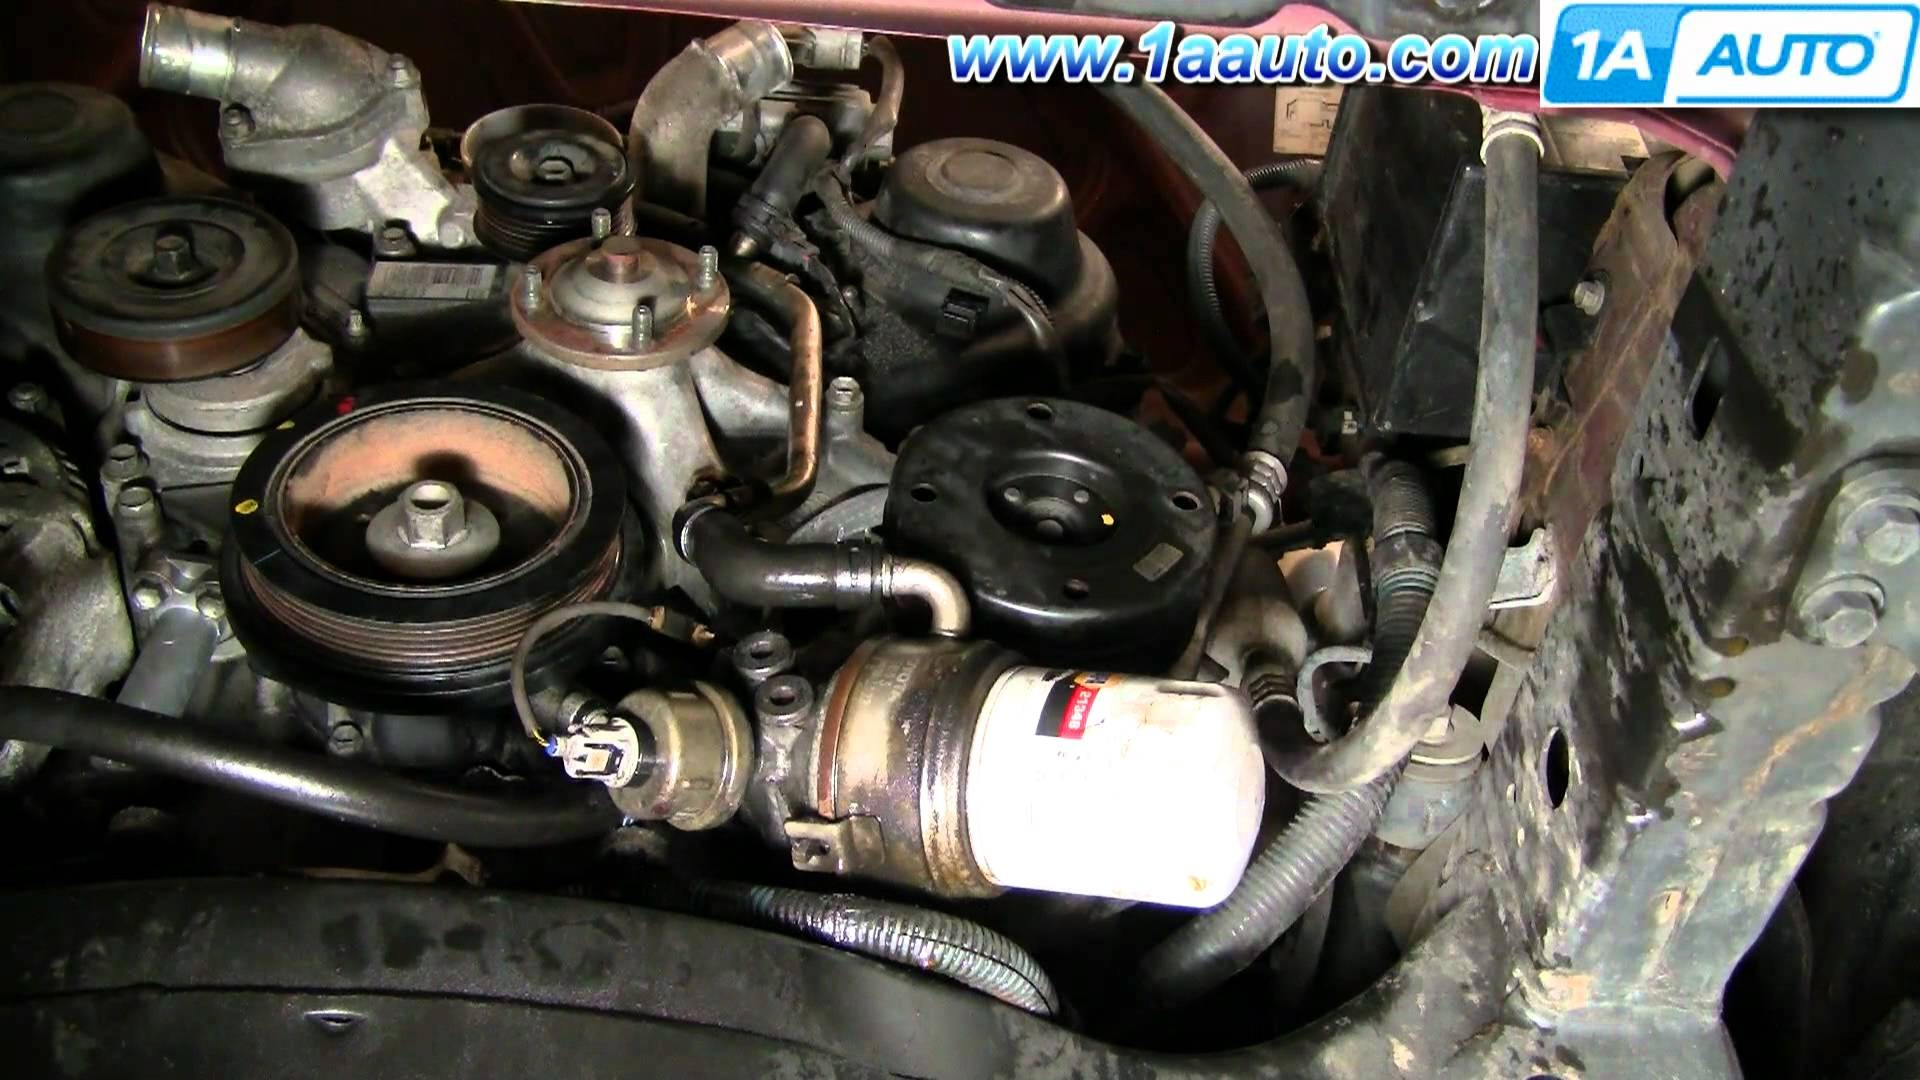 2001 toyota Sequoia Engine Diagram How to Replace toyota Tundra Timing Belt  2002 V8 Disassemble Front